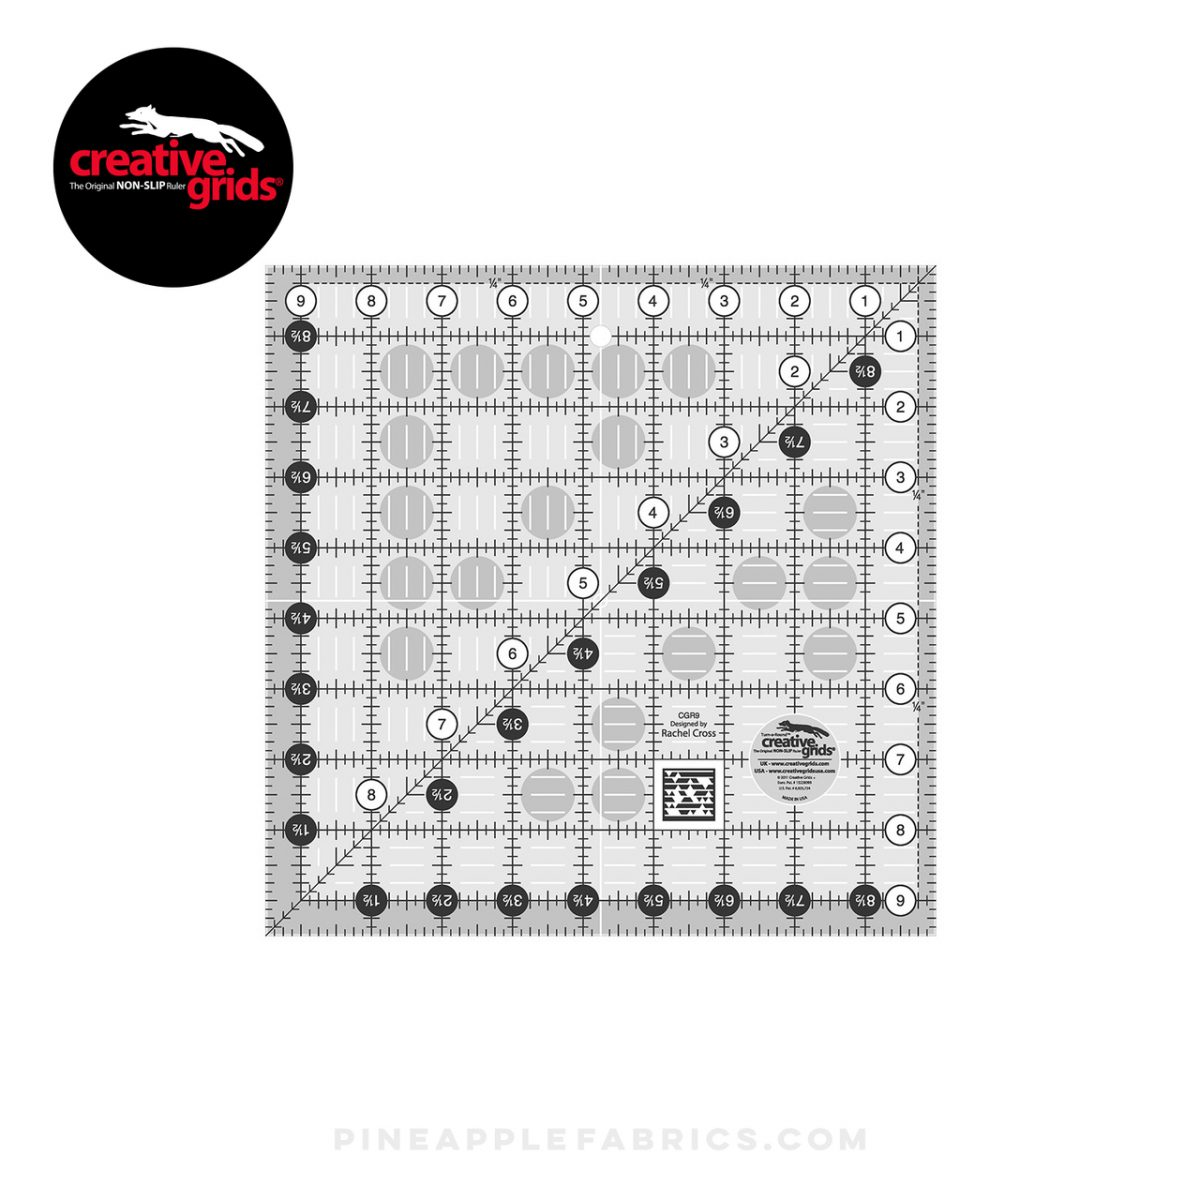 CGR9 - Creative Grids Quilt Ruler 9-1/2in Square